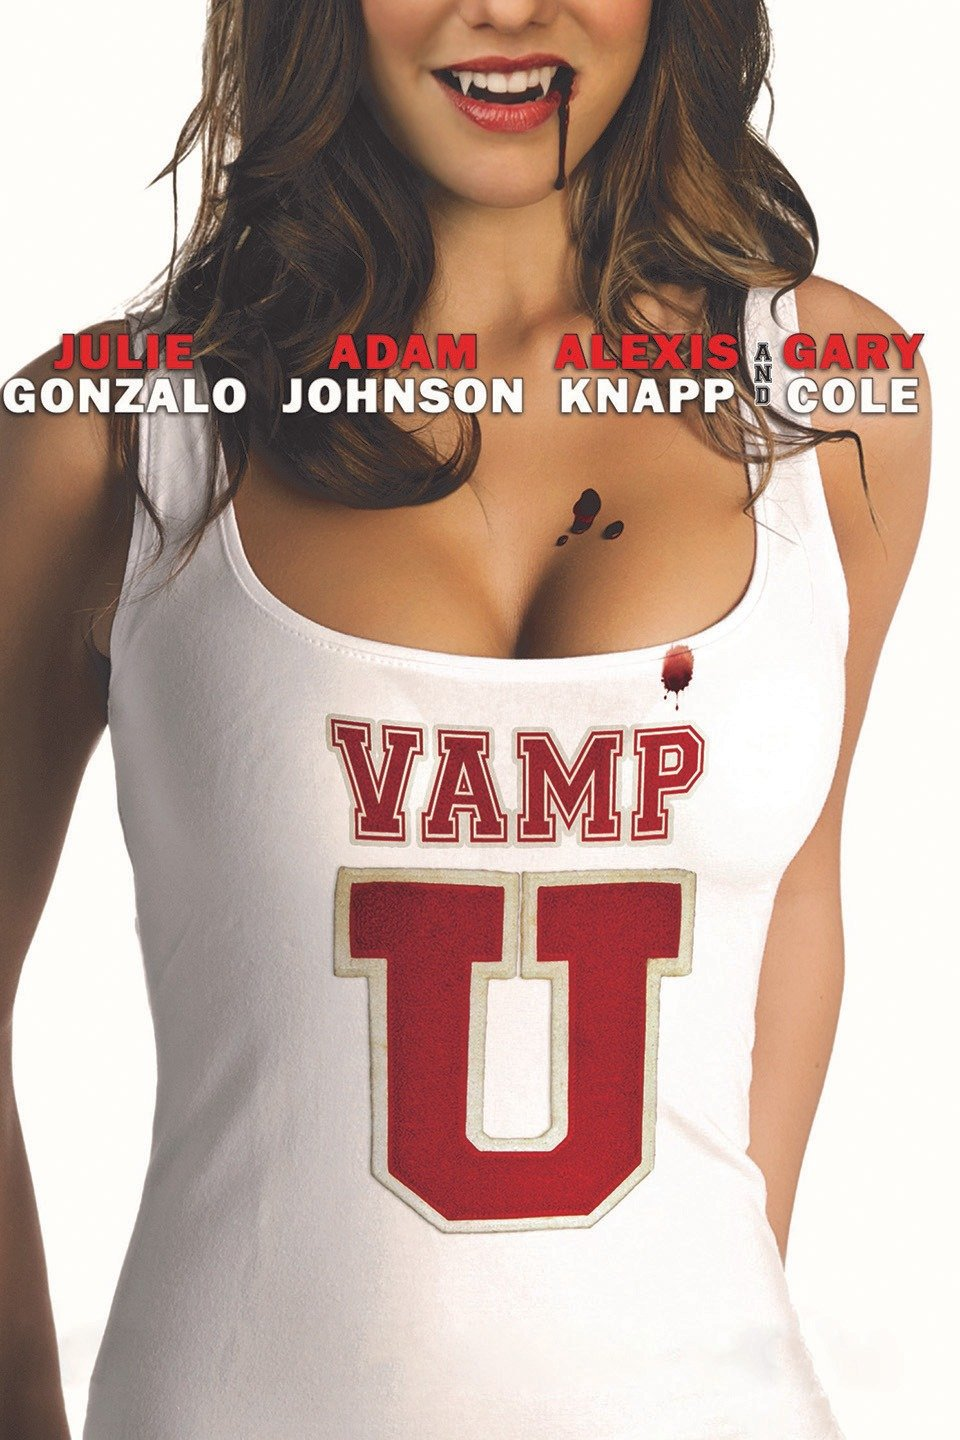 Image result for Vamp U""